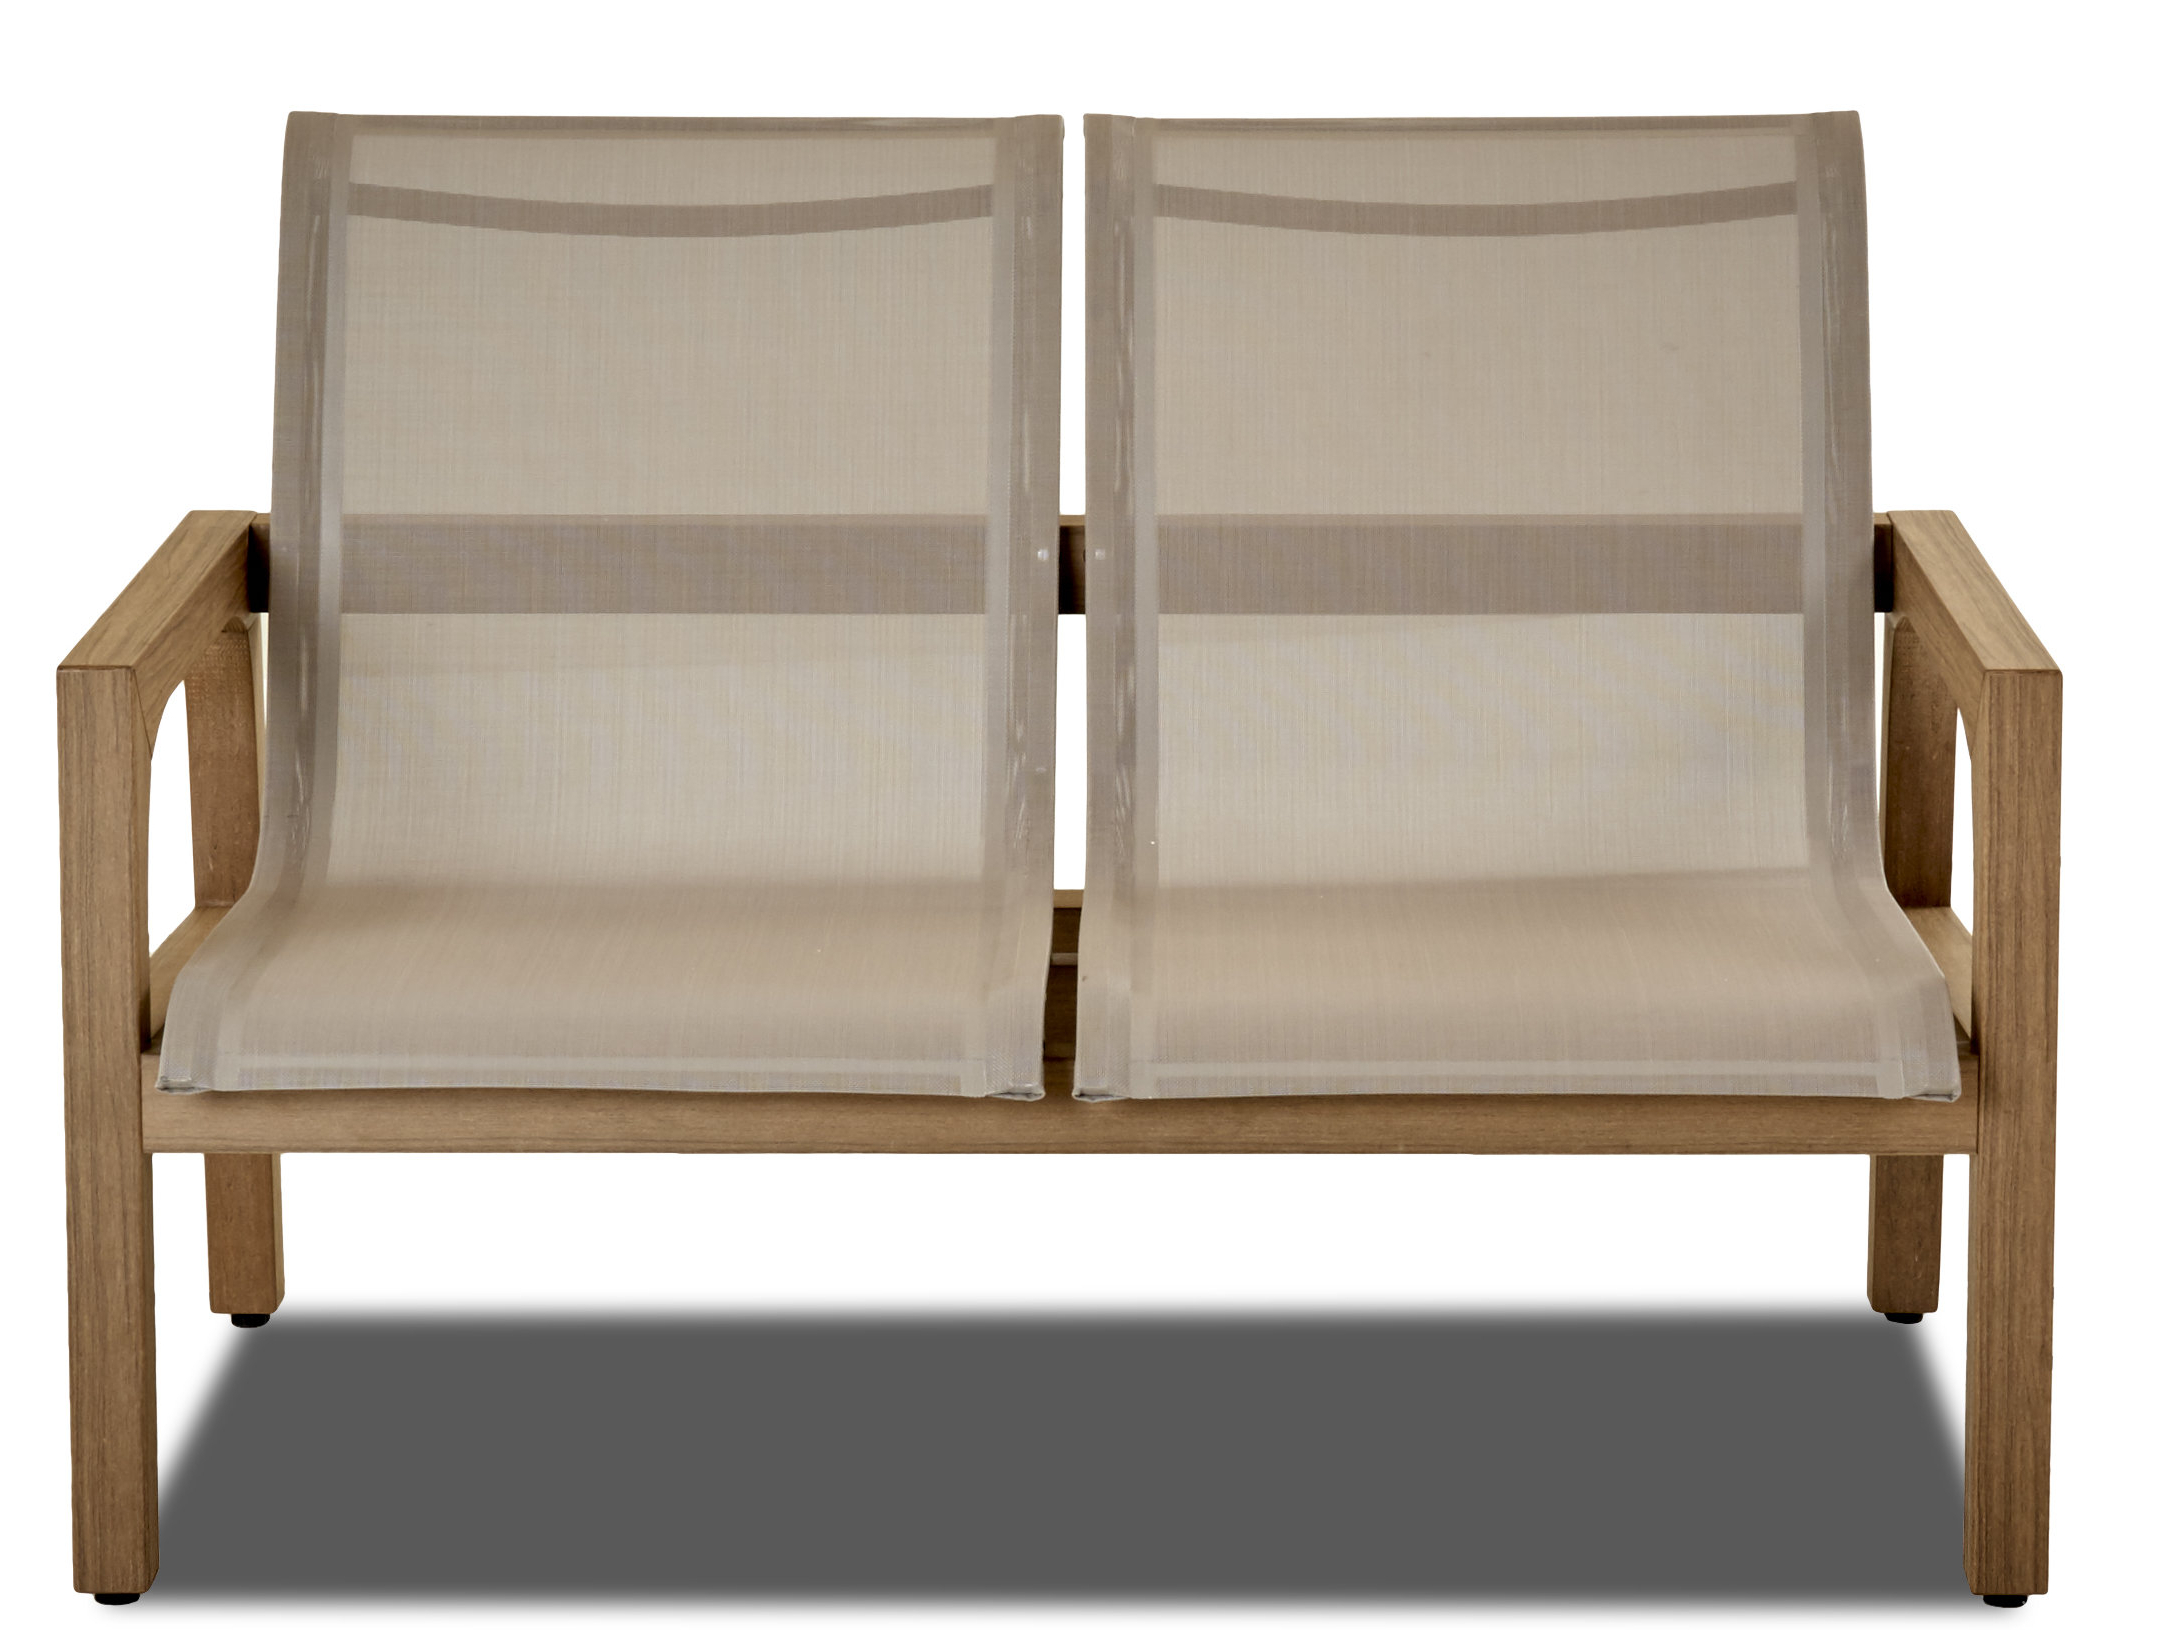 Current Calila Teak Loveseats With Cushion For Lawson Patio Teak Loveseat (View 15 of 20)